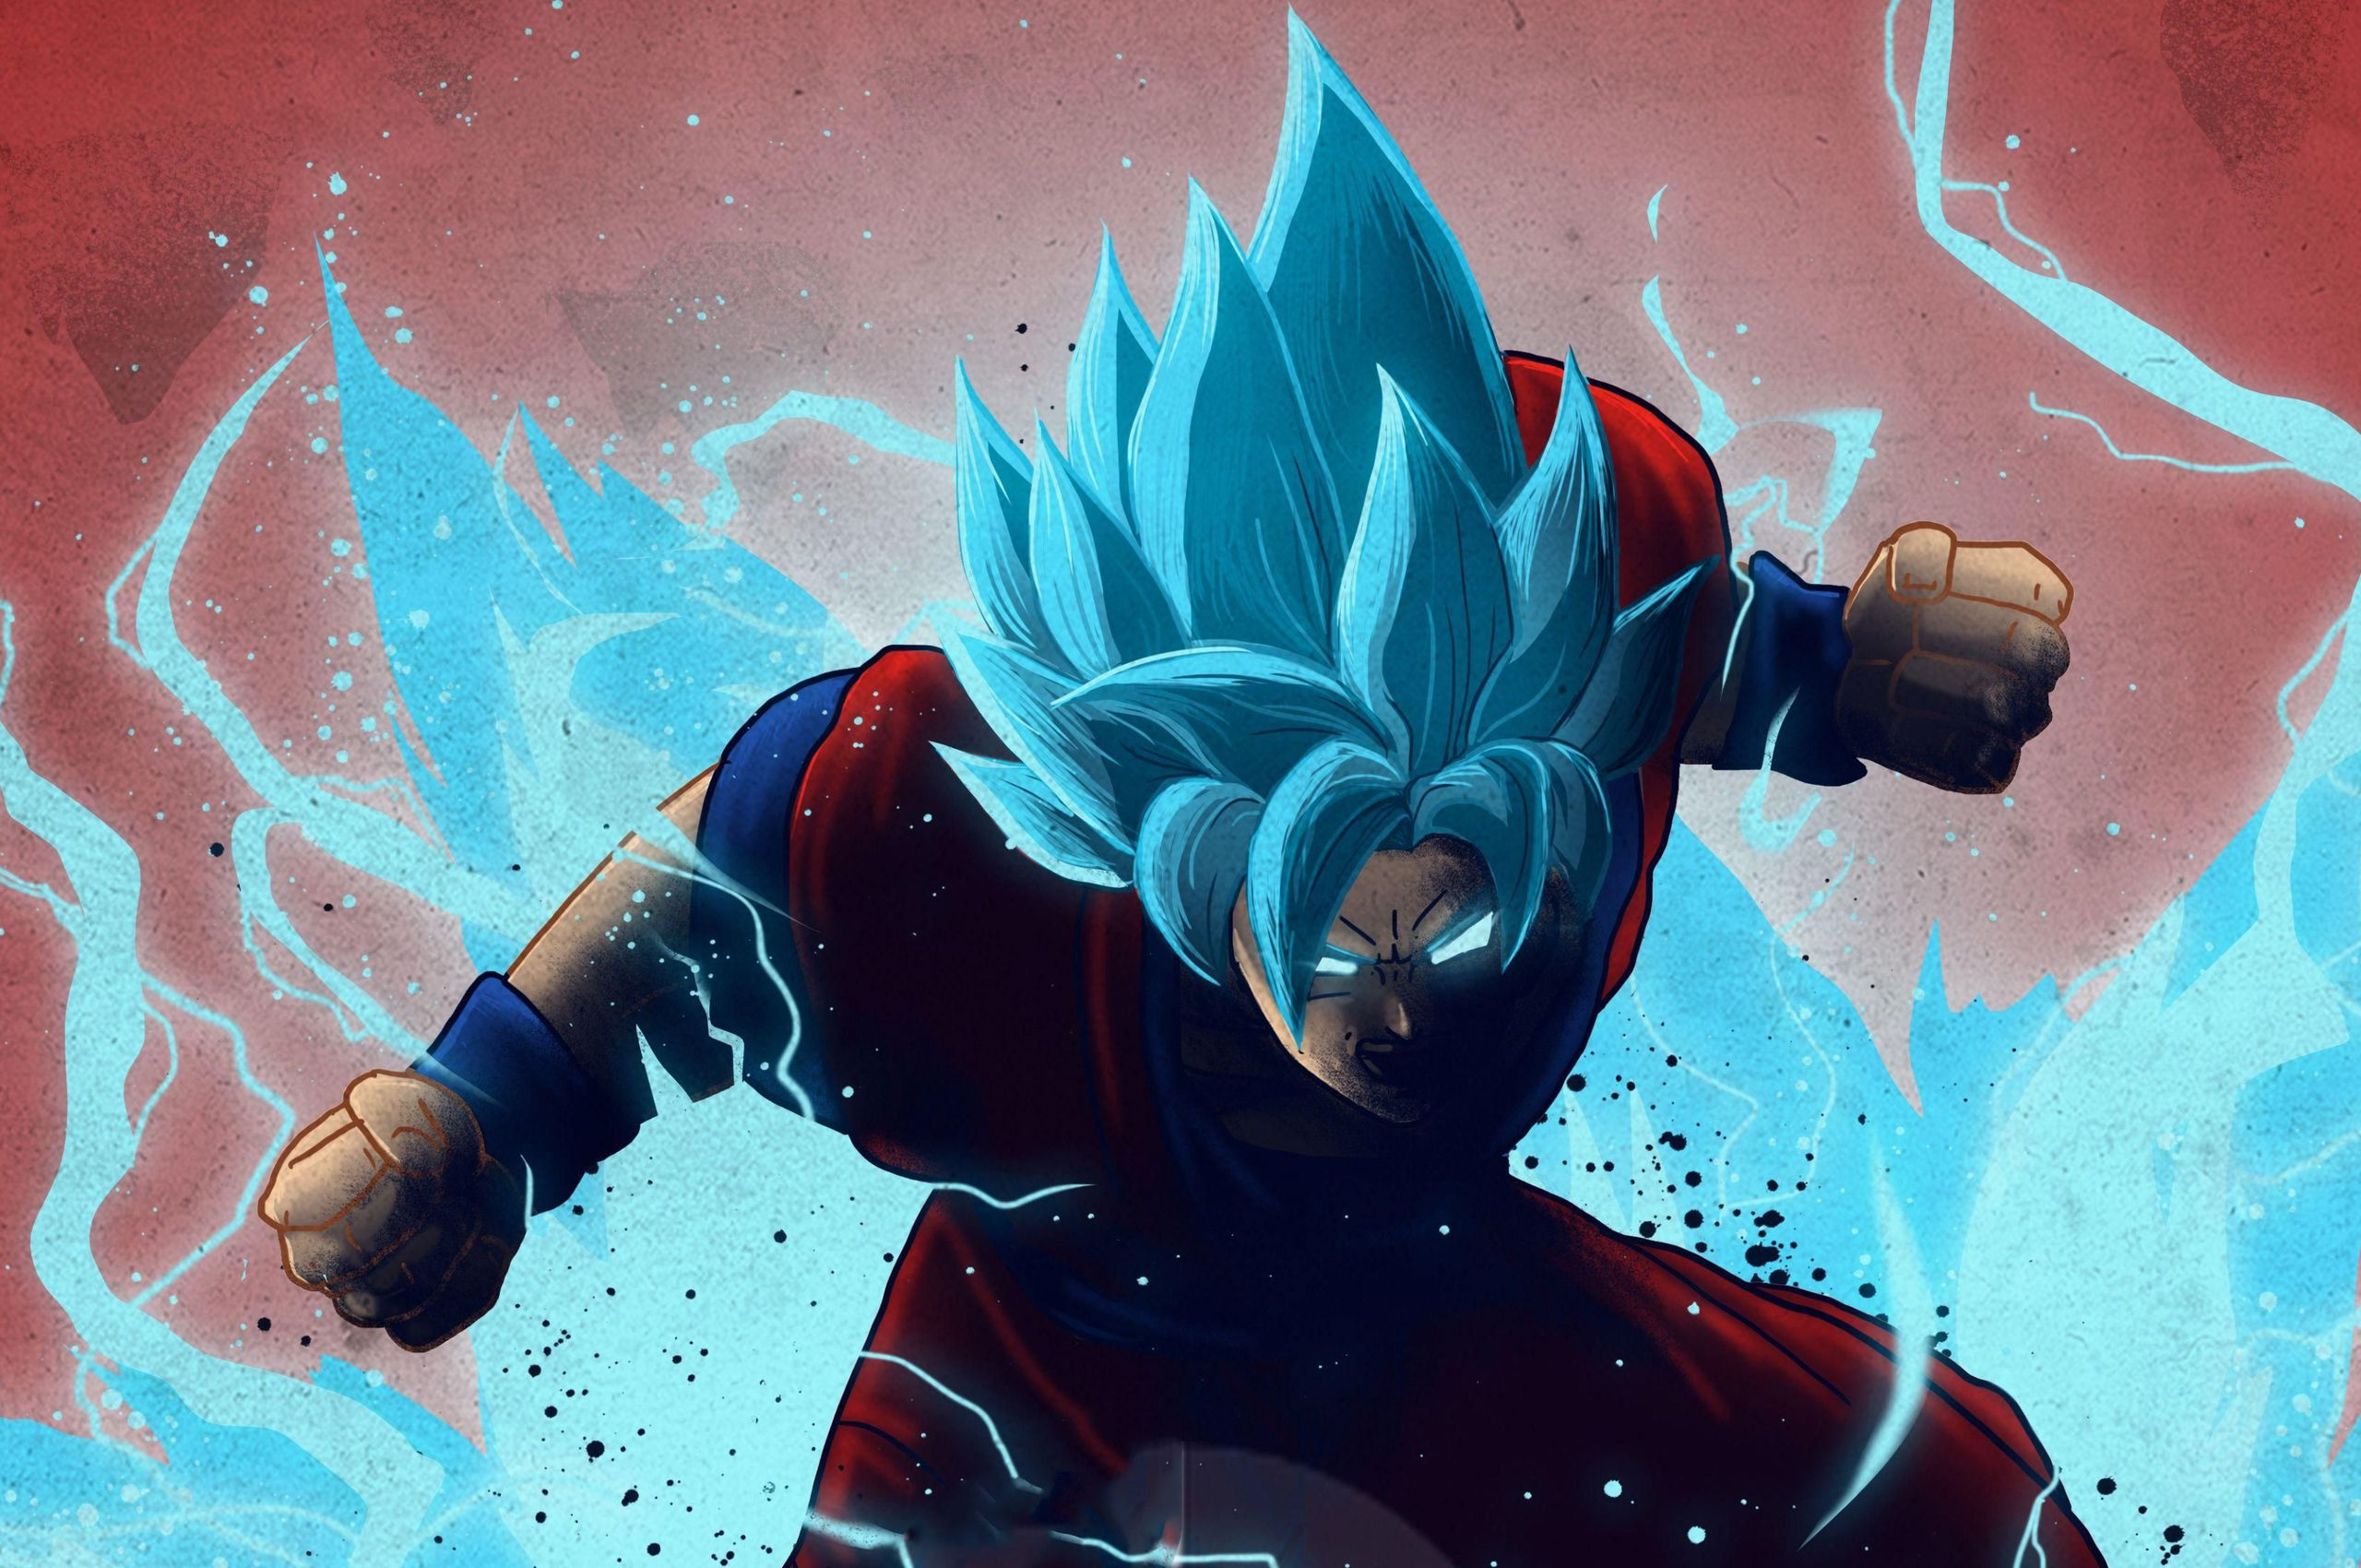 Mlwapp v2 · live wallpaper app for android · uninstall mlwapp · contact. Cool Goku Anime Wallpapers - Wallpaper Cave